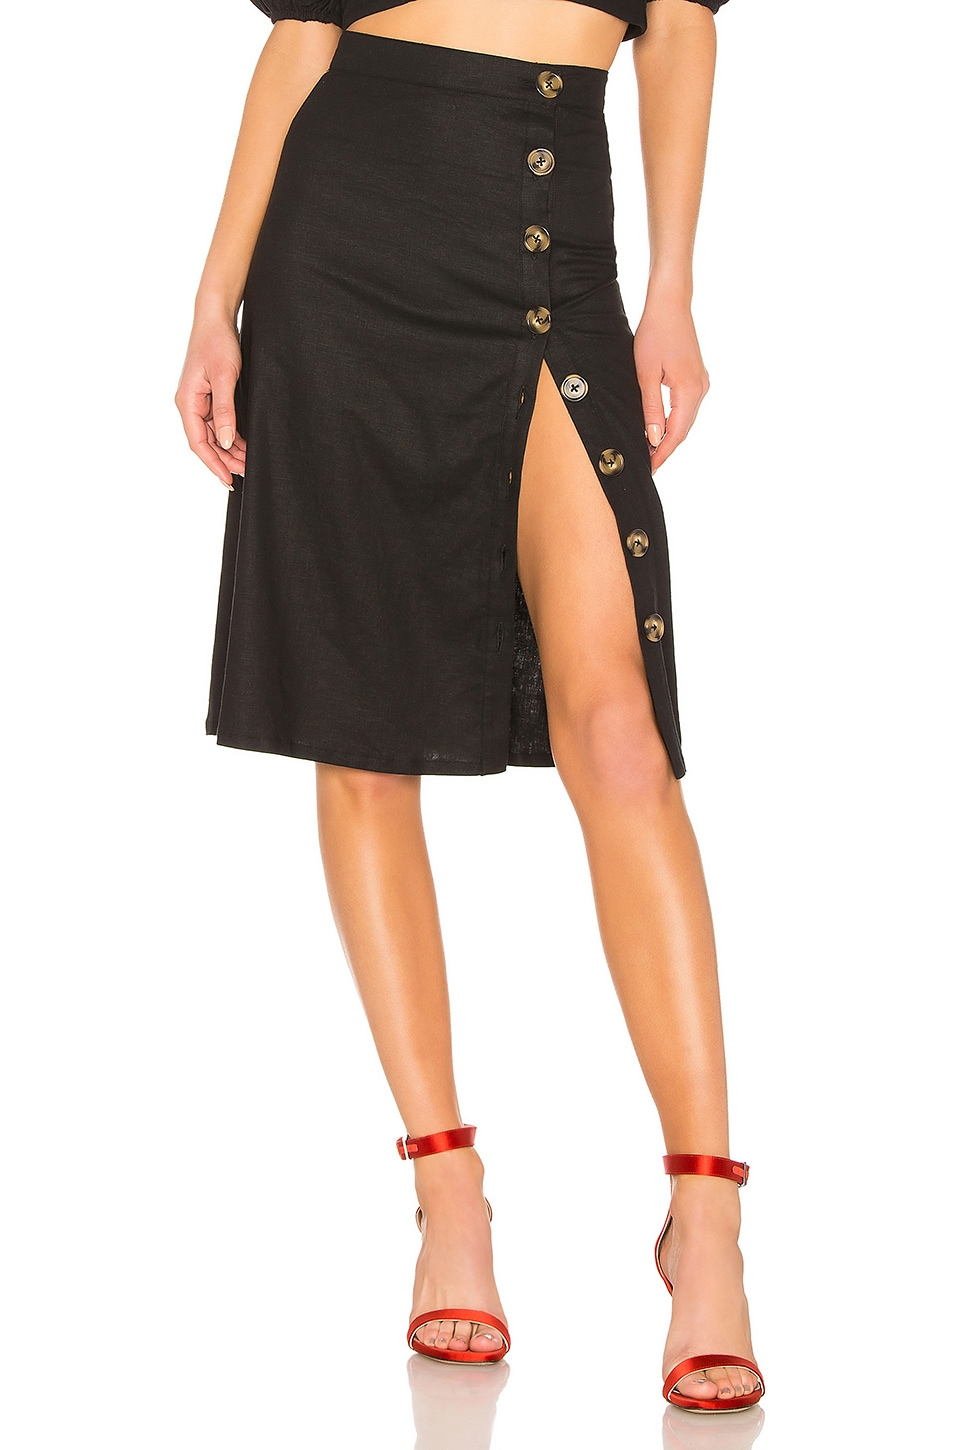 LPA Button Up Midi Skirt in Black